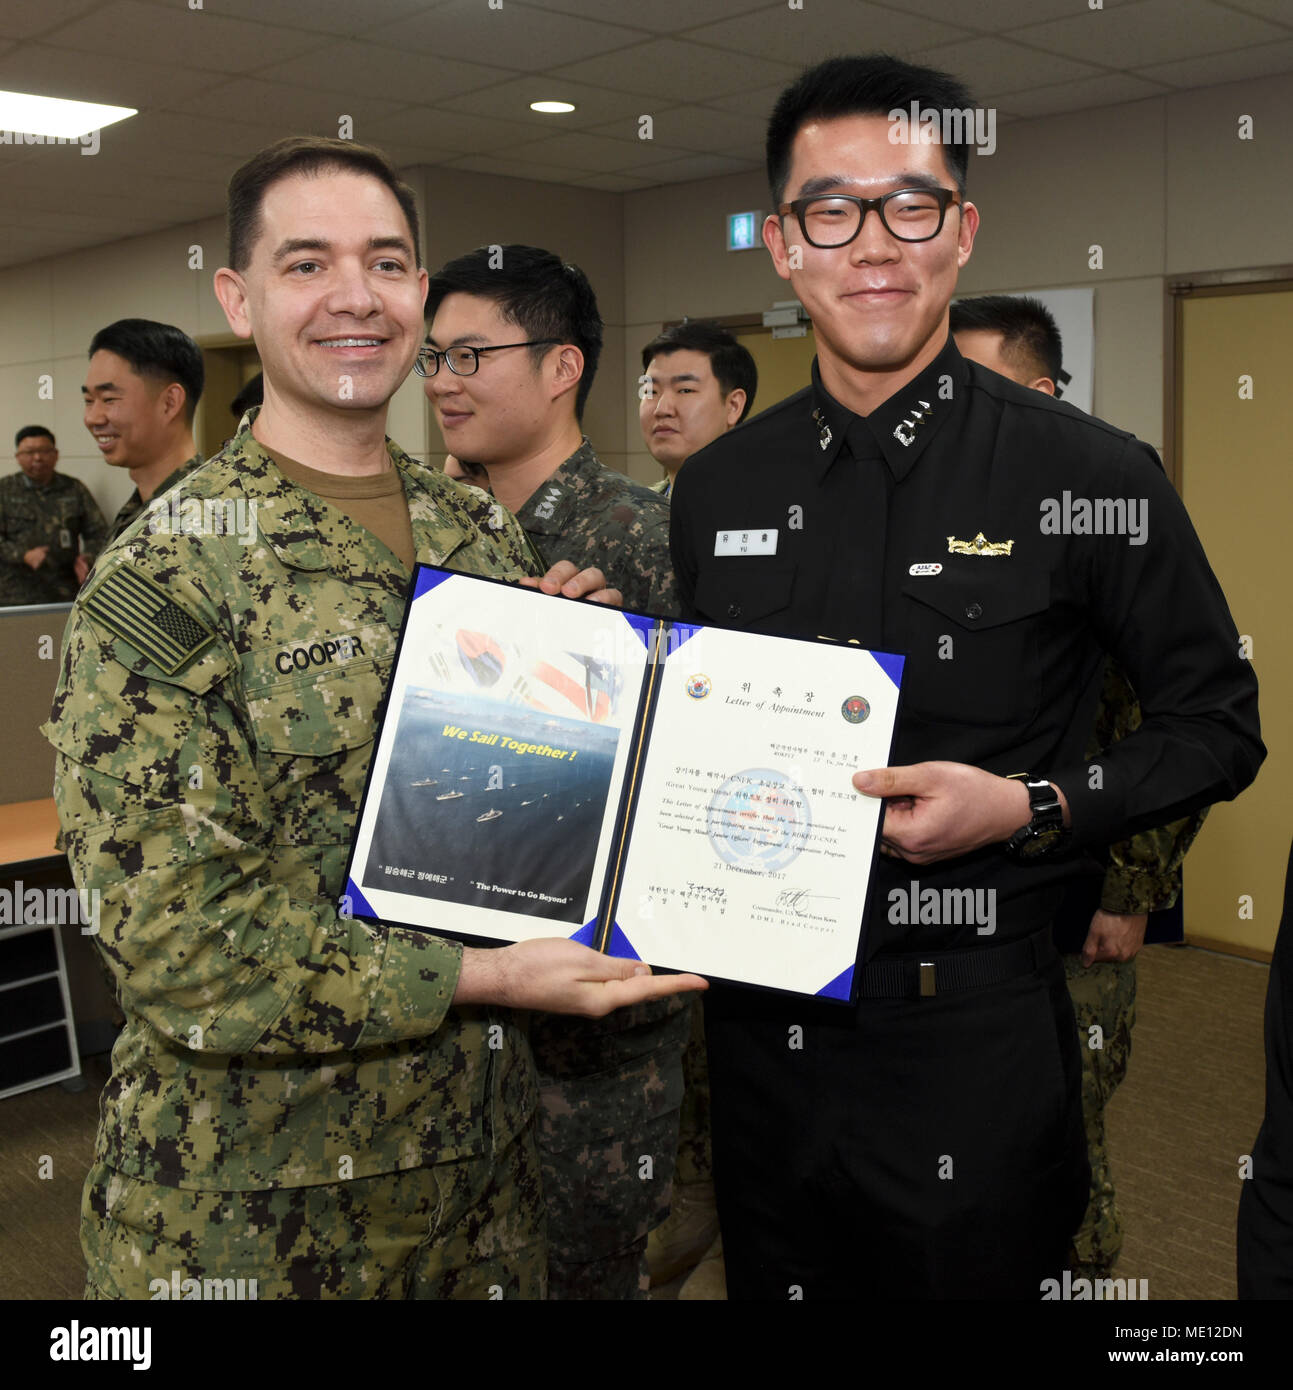 """171221-N-TB148-047 BUSAN, Republic of Korea (Dec. 21, 2017) Rear Adm. Brad Cooper, commander, U.S. Naval Forces Korea (CNFK), presents Lt. Yu, Jin Hong with a letter of appointment for his selection to the """"Great Young Minds"""" Junior Officers' Engagement and Cooperation Program. The """"Great Young Minds"""" initiative brings together hand-selected, young officers from the ROK and U.S. navies and challenges them to develop innovative solutions to further enhance the ROK -U.S. alliance of the future. (U.S. Navy photo by Mass Communication Specialist Seaman William Carlisle) Stock Photo"""